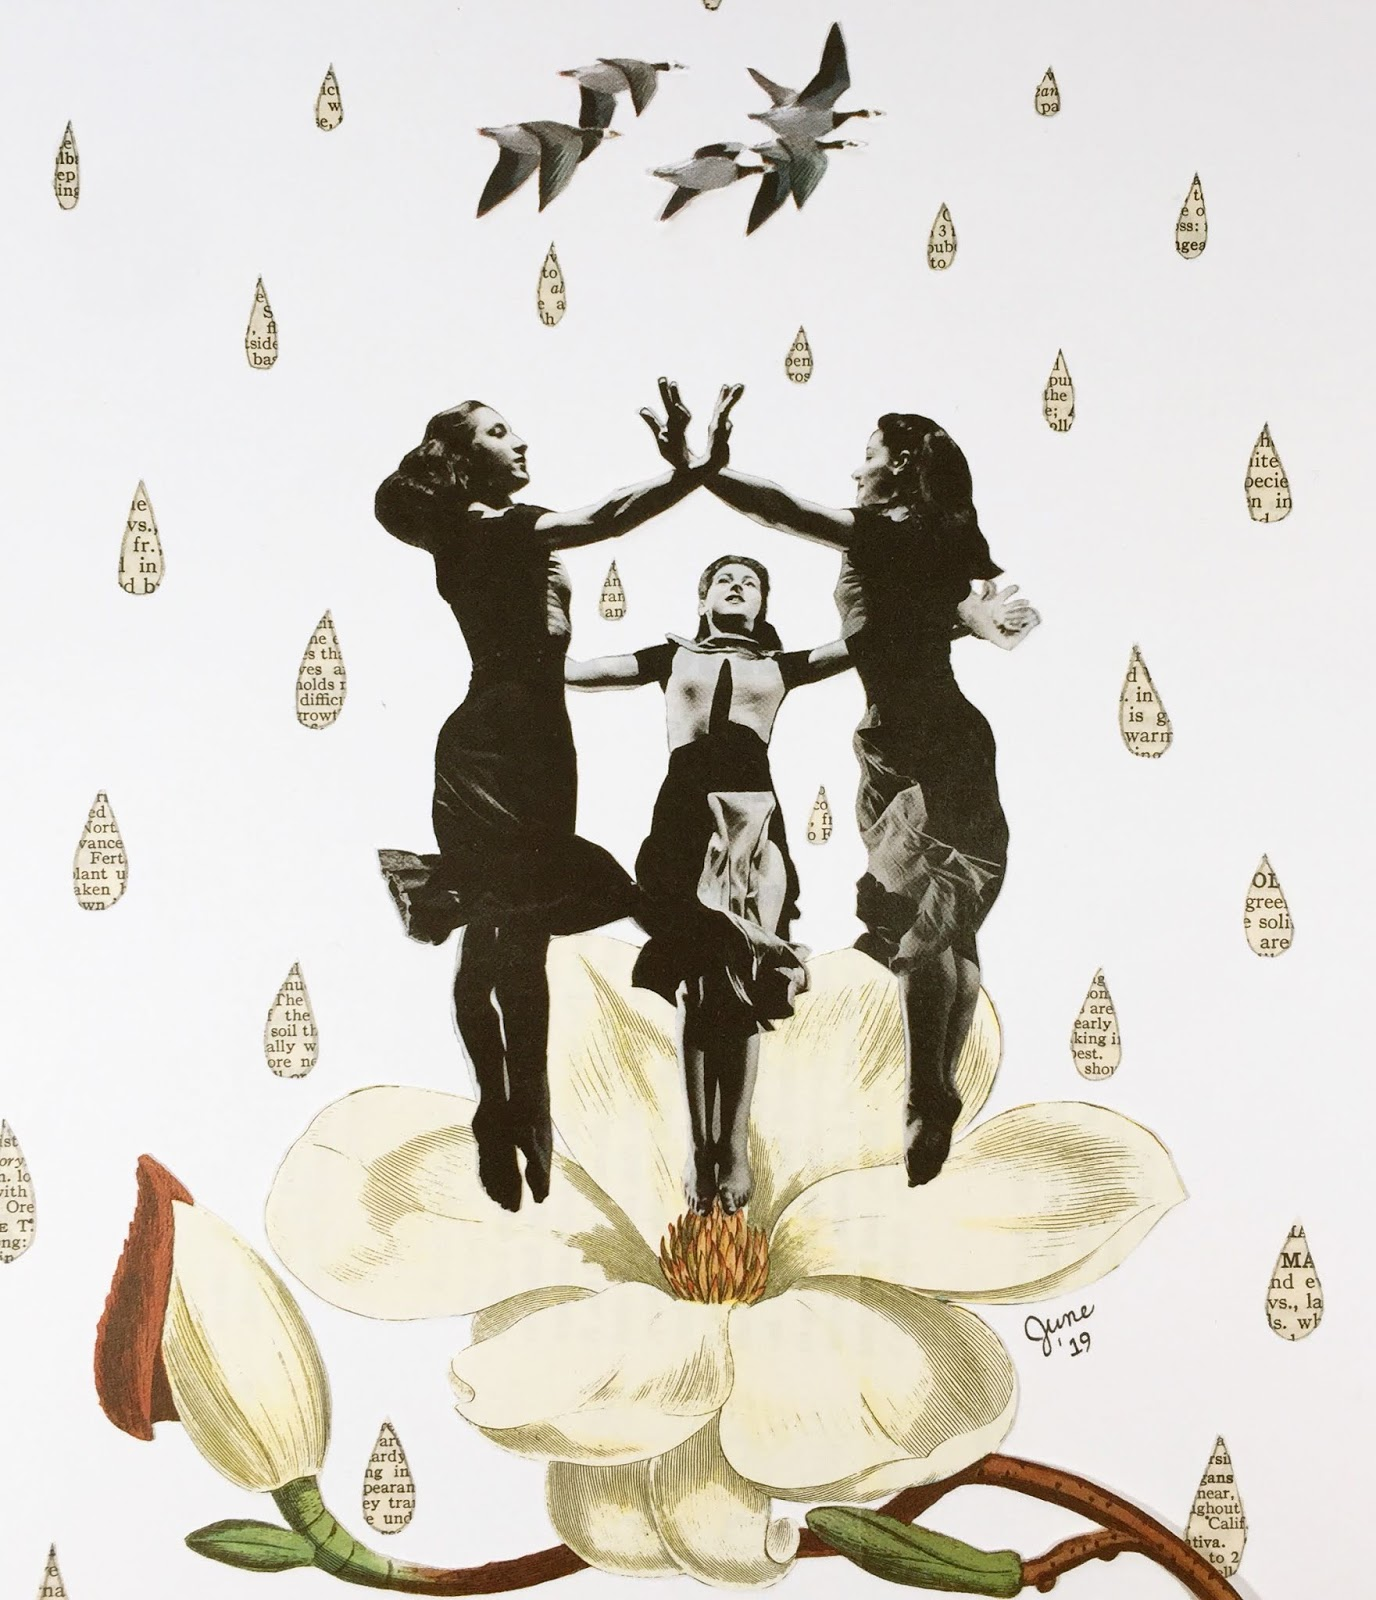 The Ancient Rituals of the Magnolia Dance collage by June Anderson of Under the Plum Blossom Tree blog, collage by June Anderson, June Anderson collagist, June Anderson collage artist, collage art by June Anderson, dance collage art, floral collage art, magnolia flower collage art, Martha Graham dancers 1937 collage, Martha Graham dancers Celebration 1937, Martha Graham Celebration collage, embrace joy collage, welcome happiness collage, magnolia grove, magnolia garden, dance on magnolia petals in the rain